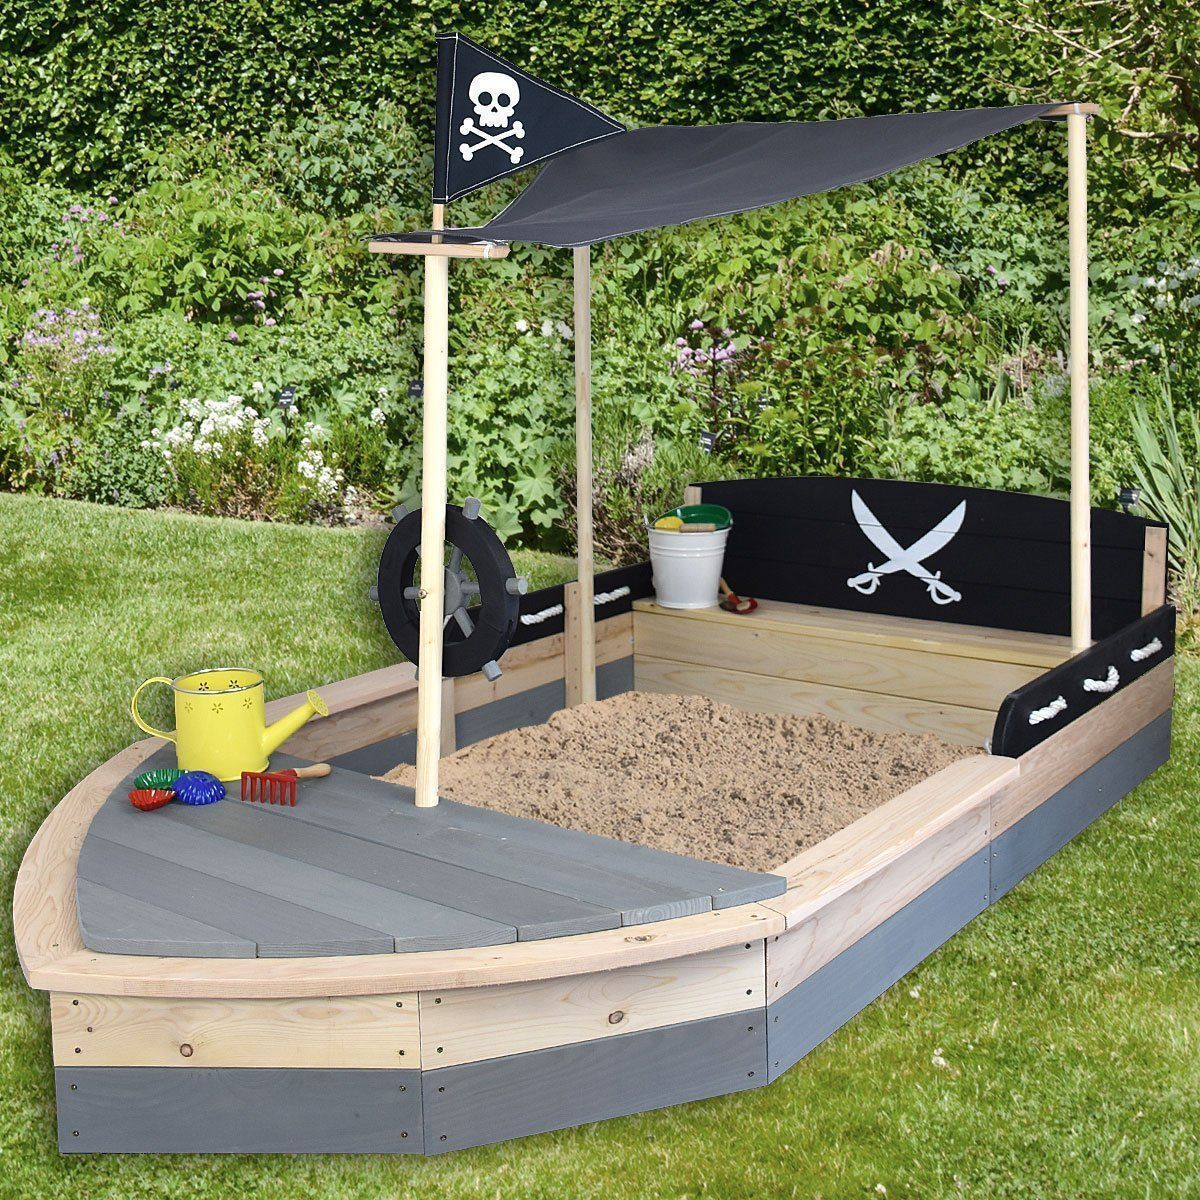 Sand Pits For Kids Diy Backyards Kids Sand Pits Backyards Diy Kids Pits Sand Sand Pits For Kids Kids Outdoor Play Backyard Play